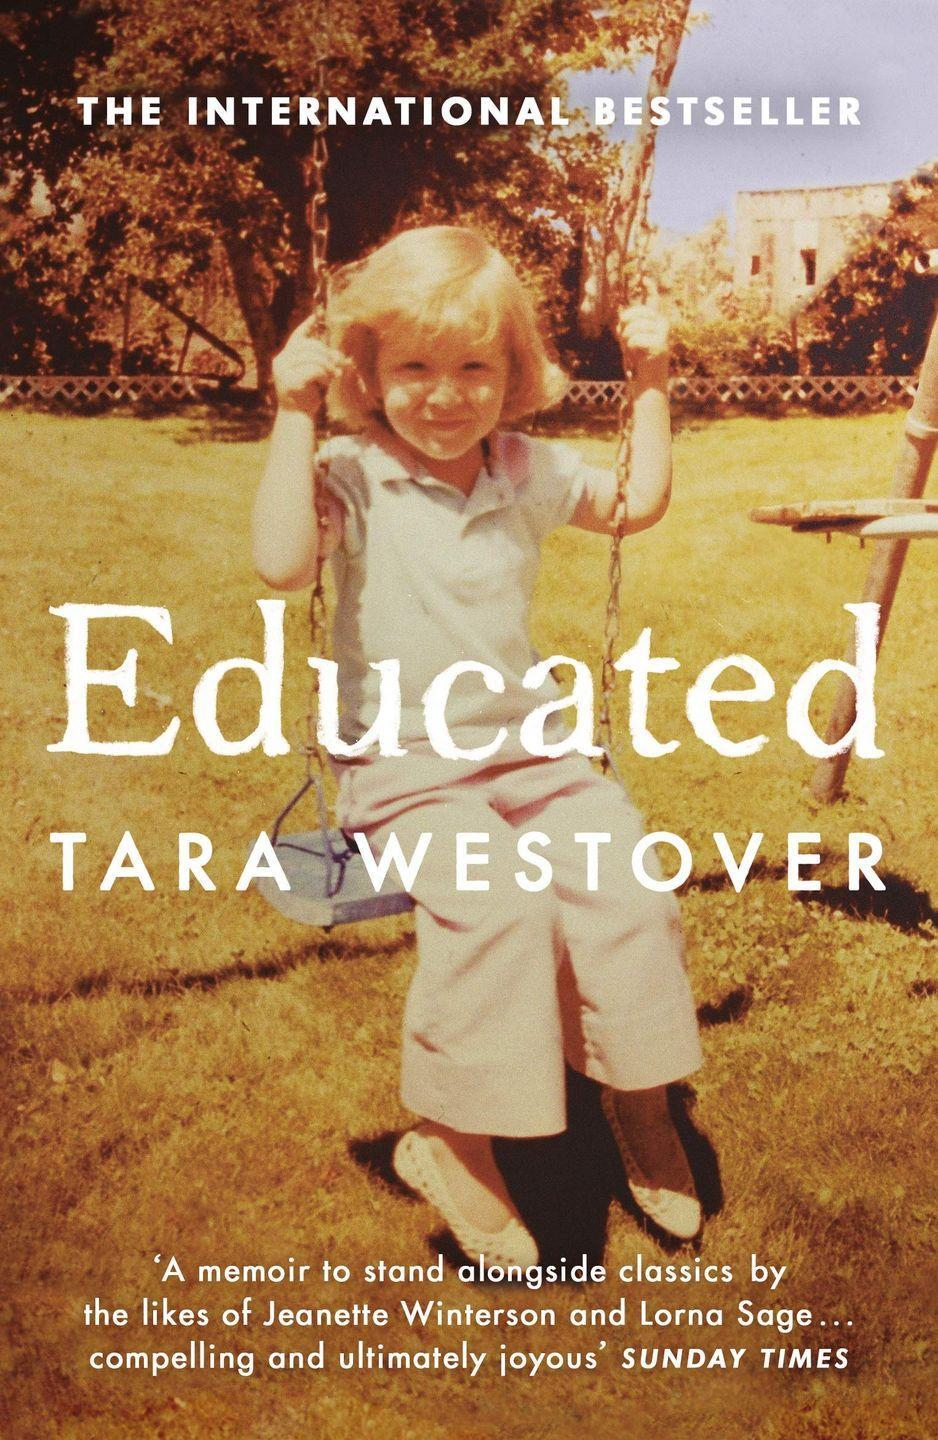 "<p>Westover's story is one of self-invention, self-belief and new beginnings. Her coming-of-age story highlights the importance of education and what it offers.</p><p><a class=""link rapid-noclick-resp"" href=""https://www.amazon.co.uk/Educated-international-bestselling-Paperback-Teaching/dp/B07S8BNNY6/ref=pd_lpo_14_t_0/261-8973071-0935254?_encoding=UTF8&pd_rd_i=B07S8BNNY6&pd_rd_r=8b94ca2b-dab2-4a48-bfc3-ce9346e422ee&pd_rd_w=yCgWt&pd_rd_wg=maq2v&pf_rd_p=5f46aaad-3d39-458b-be15-624123b74416&pf_rd_r=ZBGWAQMMGJHVW9GCEE1G&psc=1&refRID=ZBGWAQMMGJHVW9GCEE1G&tag=hearstuk-yahoo-21&ascsubtag=%5Bartid%7C1921.g.32141605%5Bsrc%7Cyahoo-uk"" rel=""nofollow noopener"" target=""_blank"" data-ylk=""slk:SHOP NOW"">SHOP NOW</a></p>"